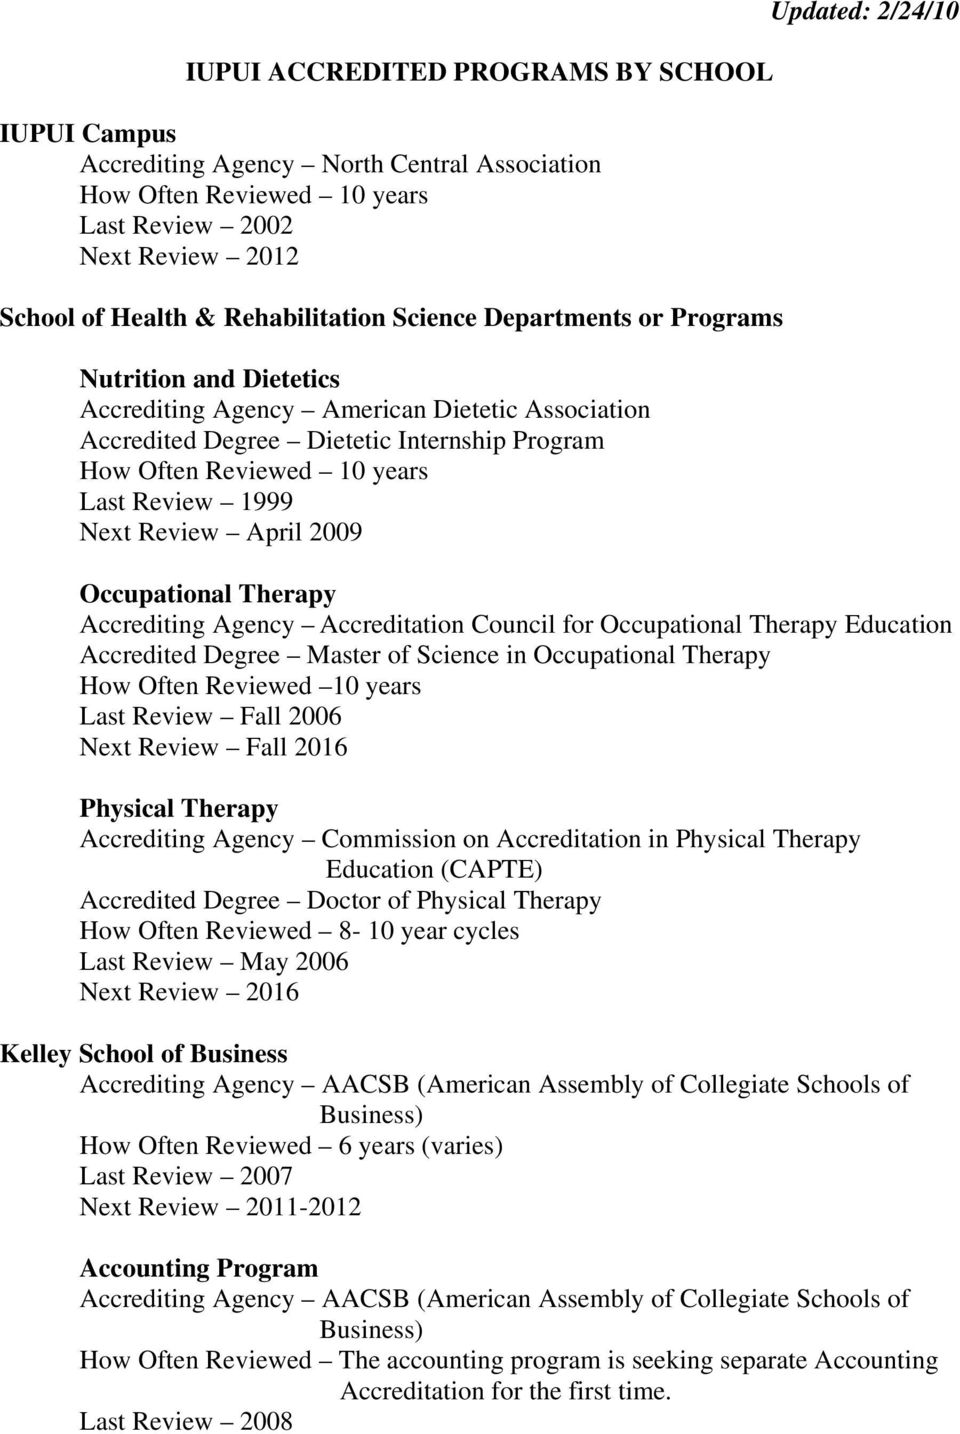 April 2009 Updated: 2/24/10 Occupational Therapy Accrediting Agency Accreditation Council for Occupational Therapy Education Accredited Degree Master of Science in Occupational Therapy How Often